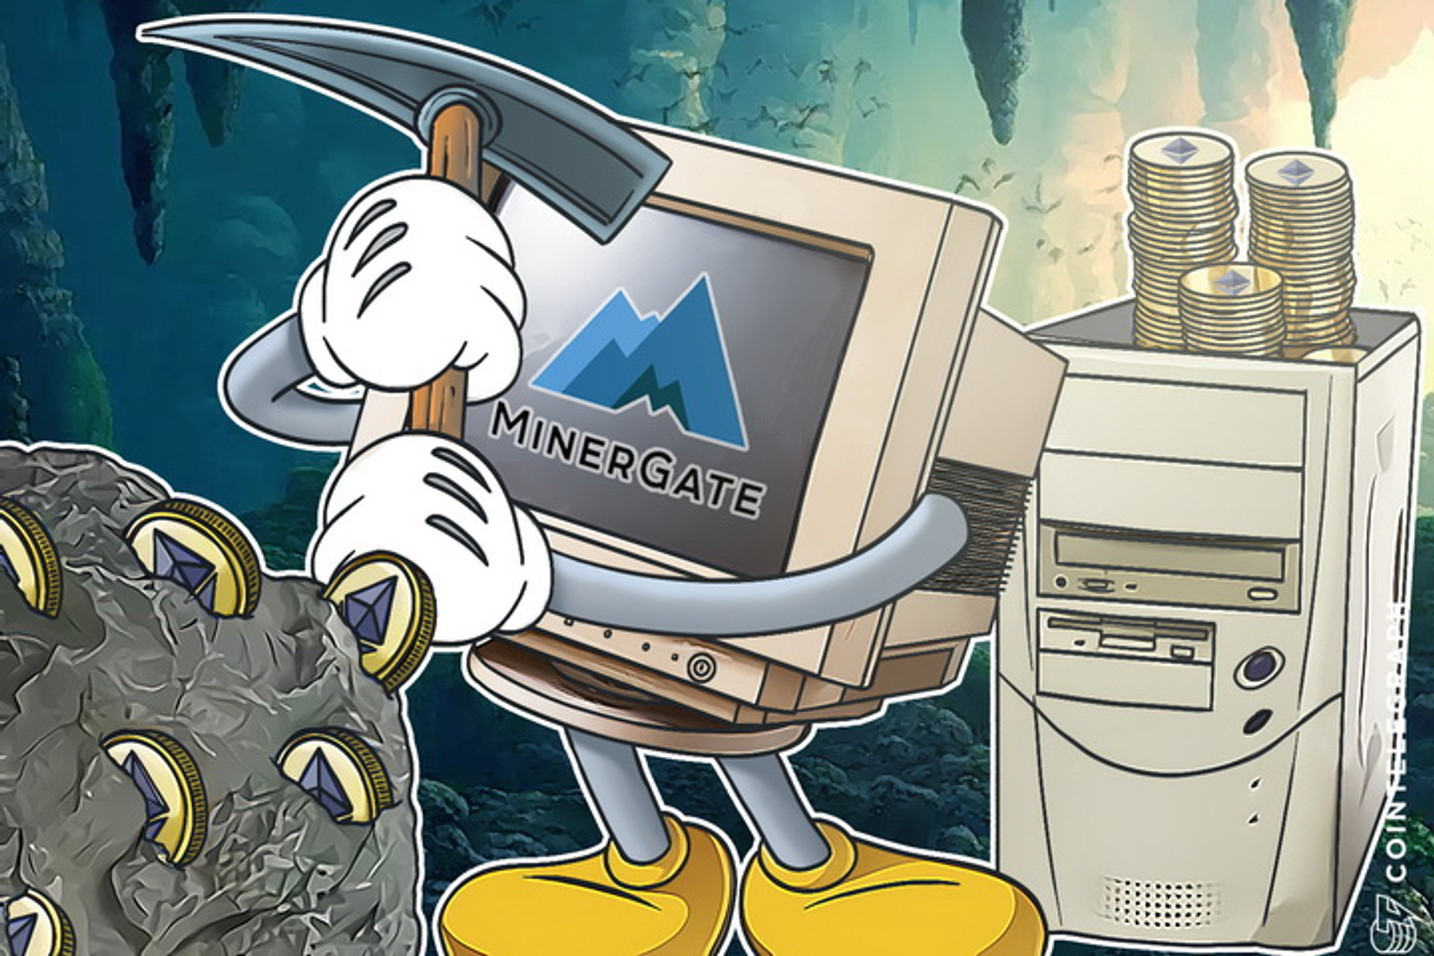 Ethereum Mining Made Possible on Any PCs